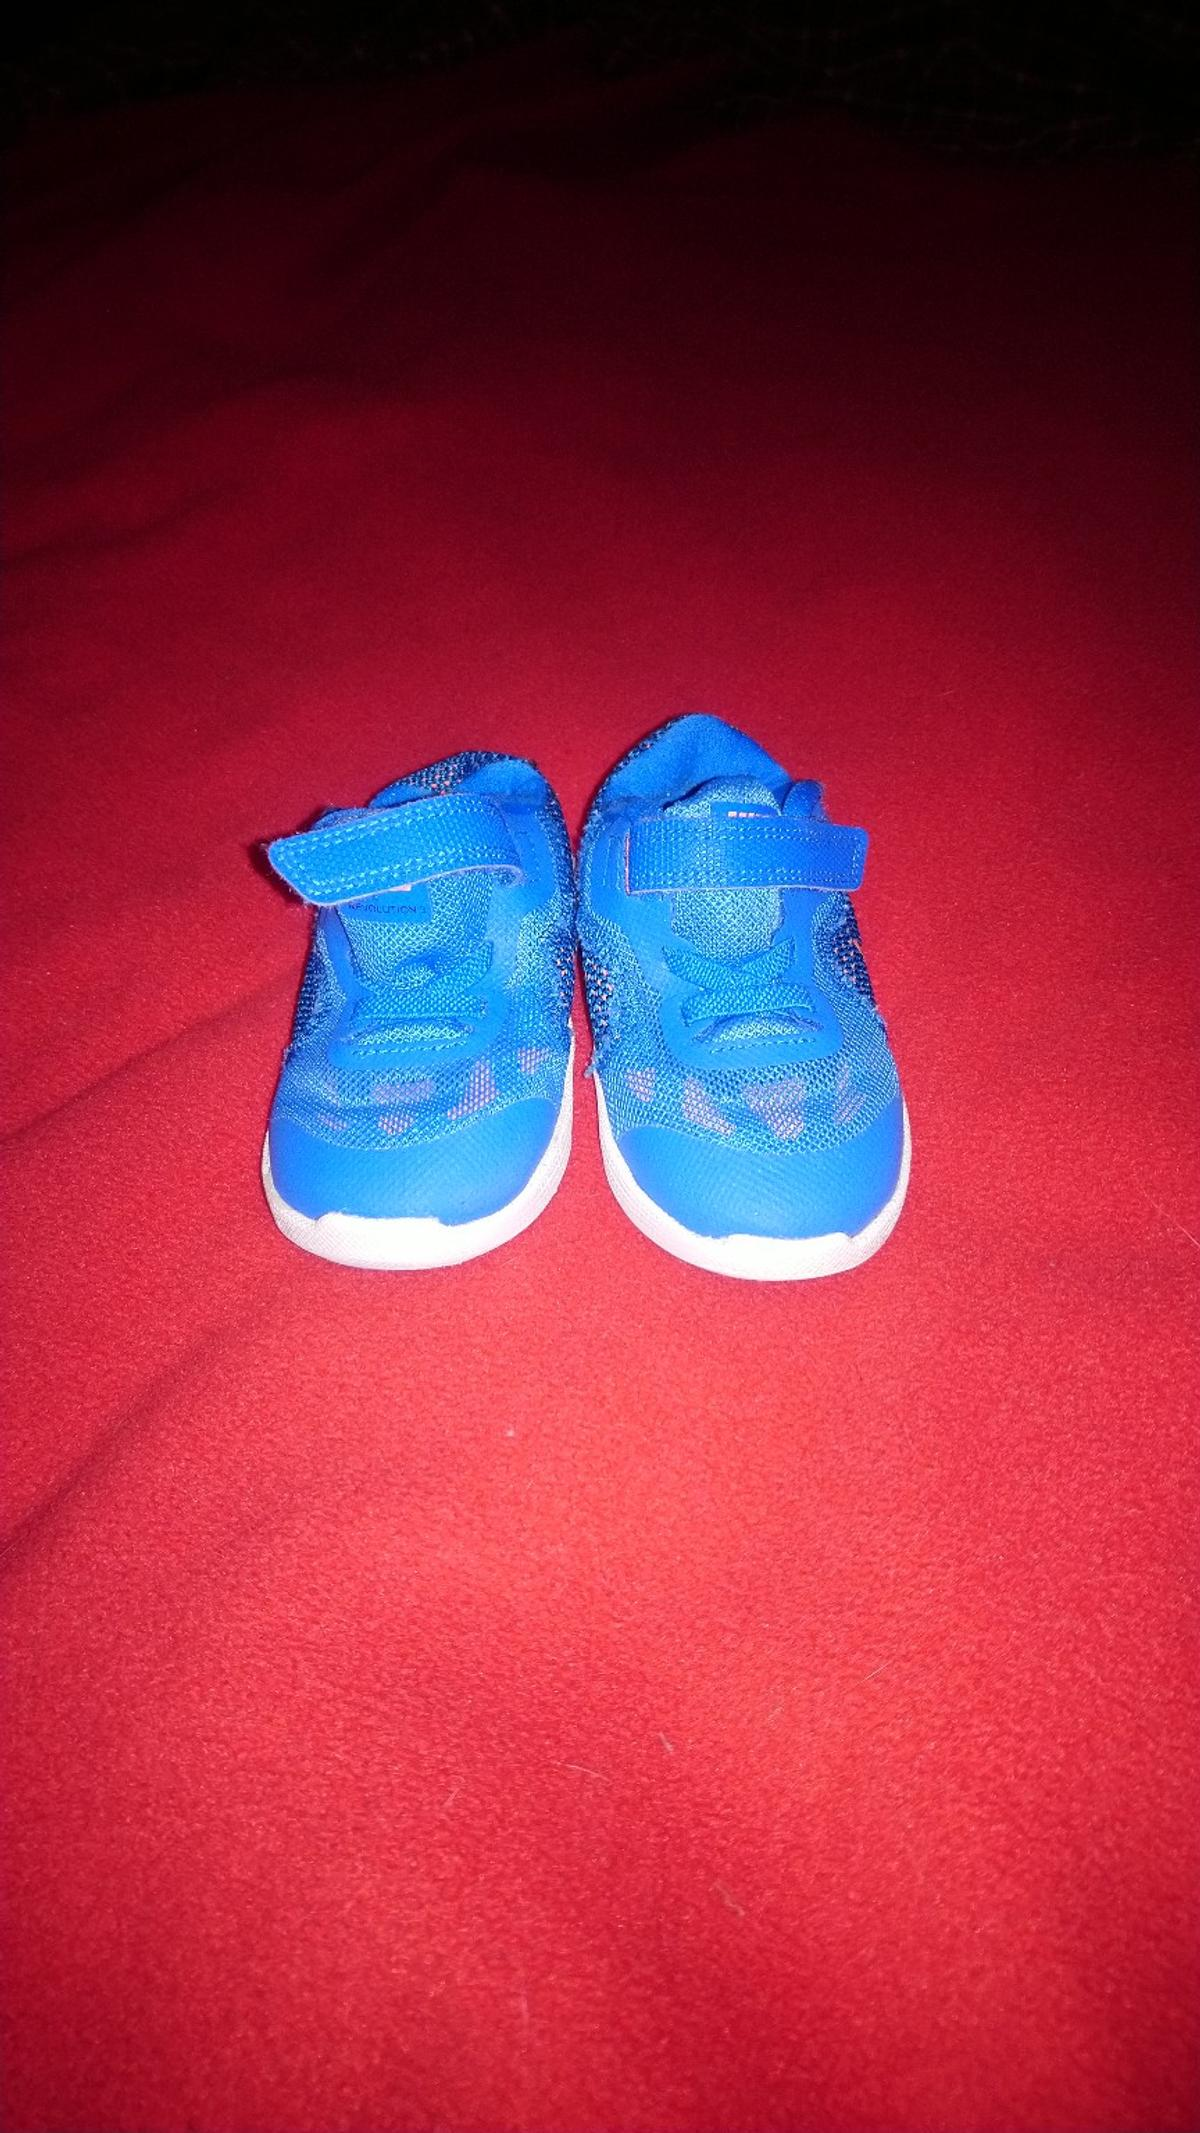 Kinder Nike Schuhe in 04617 Kriebitzsch for €8.00 for sale